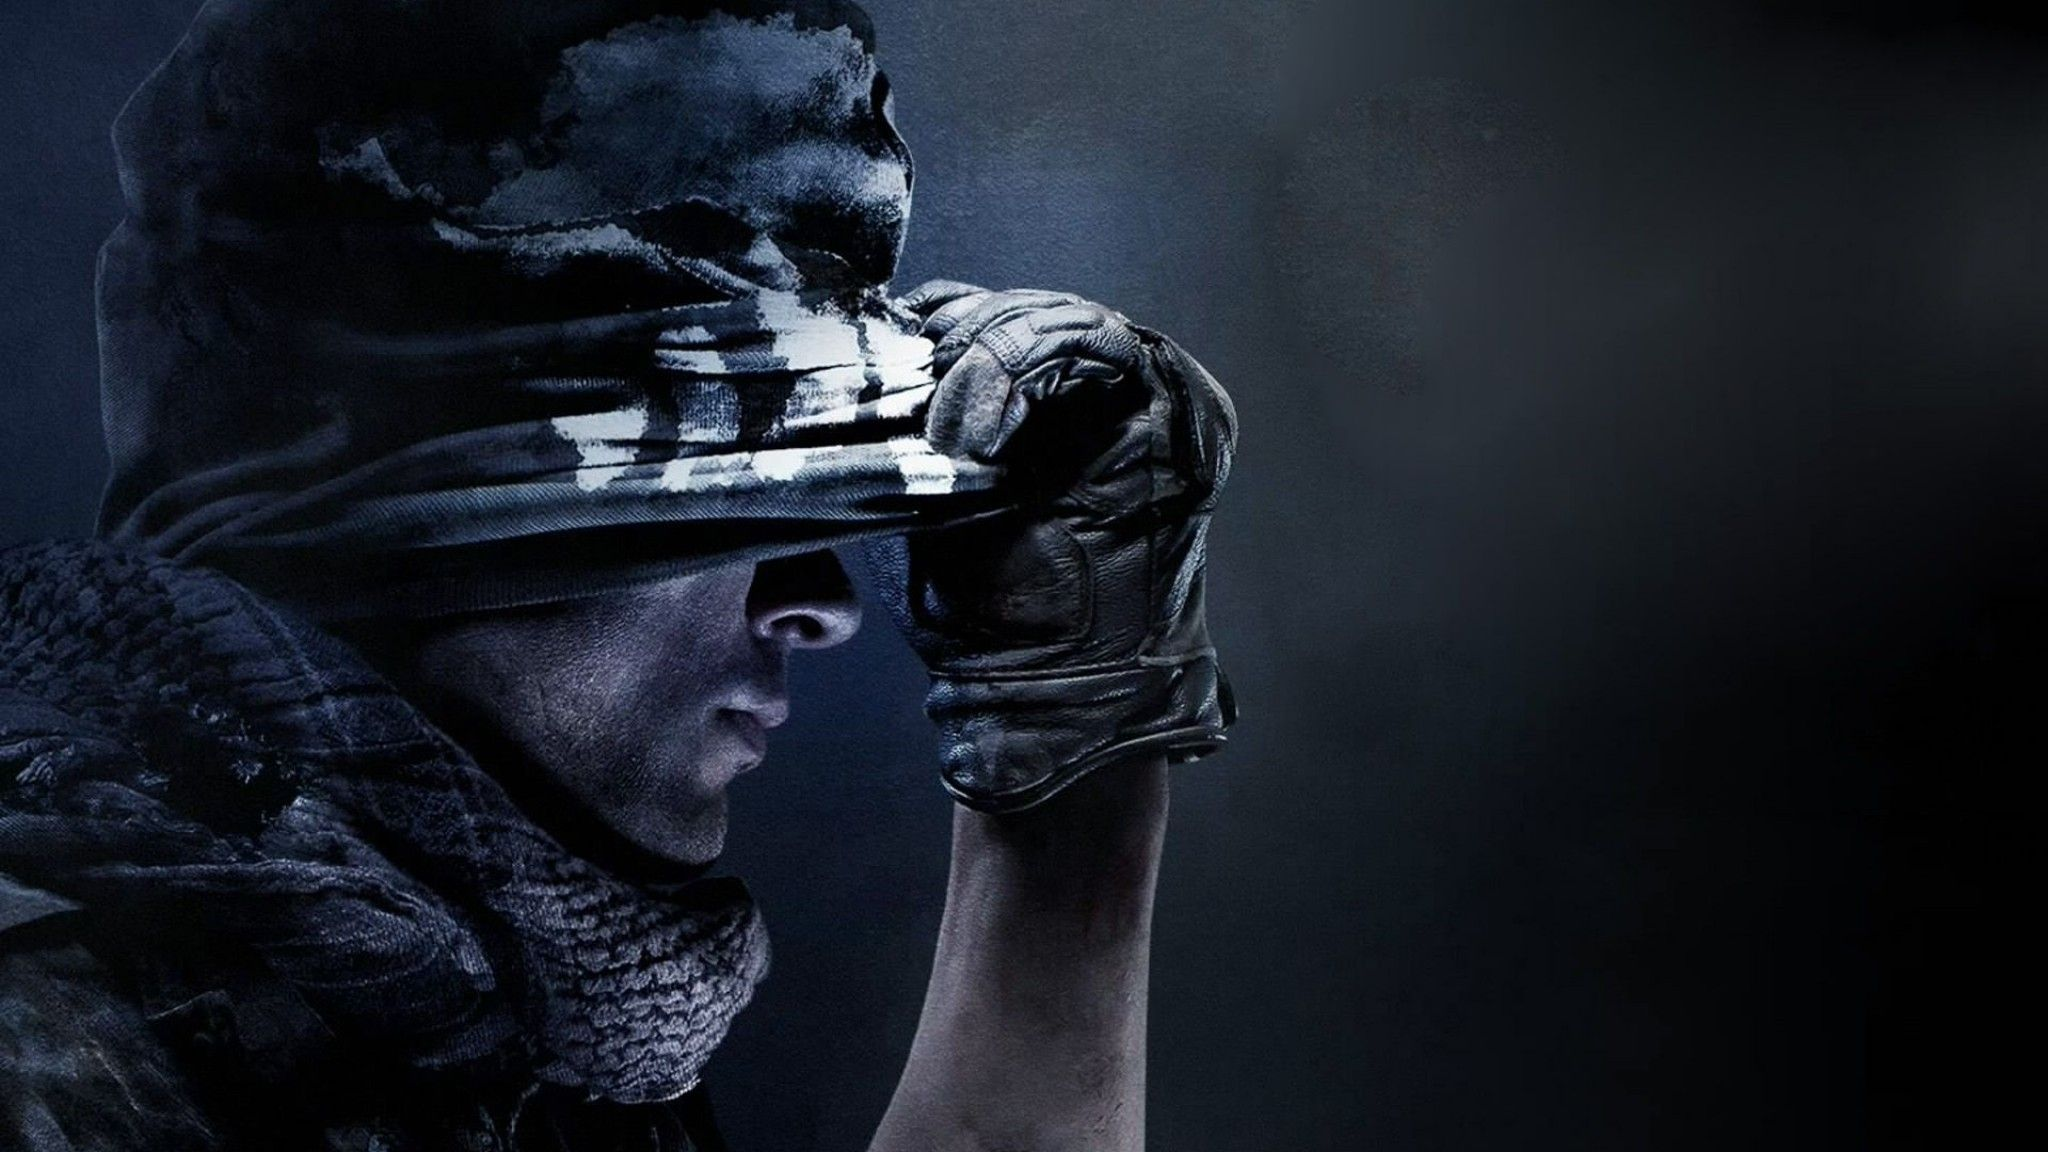 Call Of Duty Ghosts Android Wallpaper free download Разное